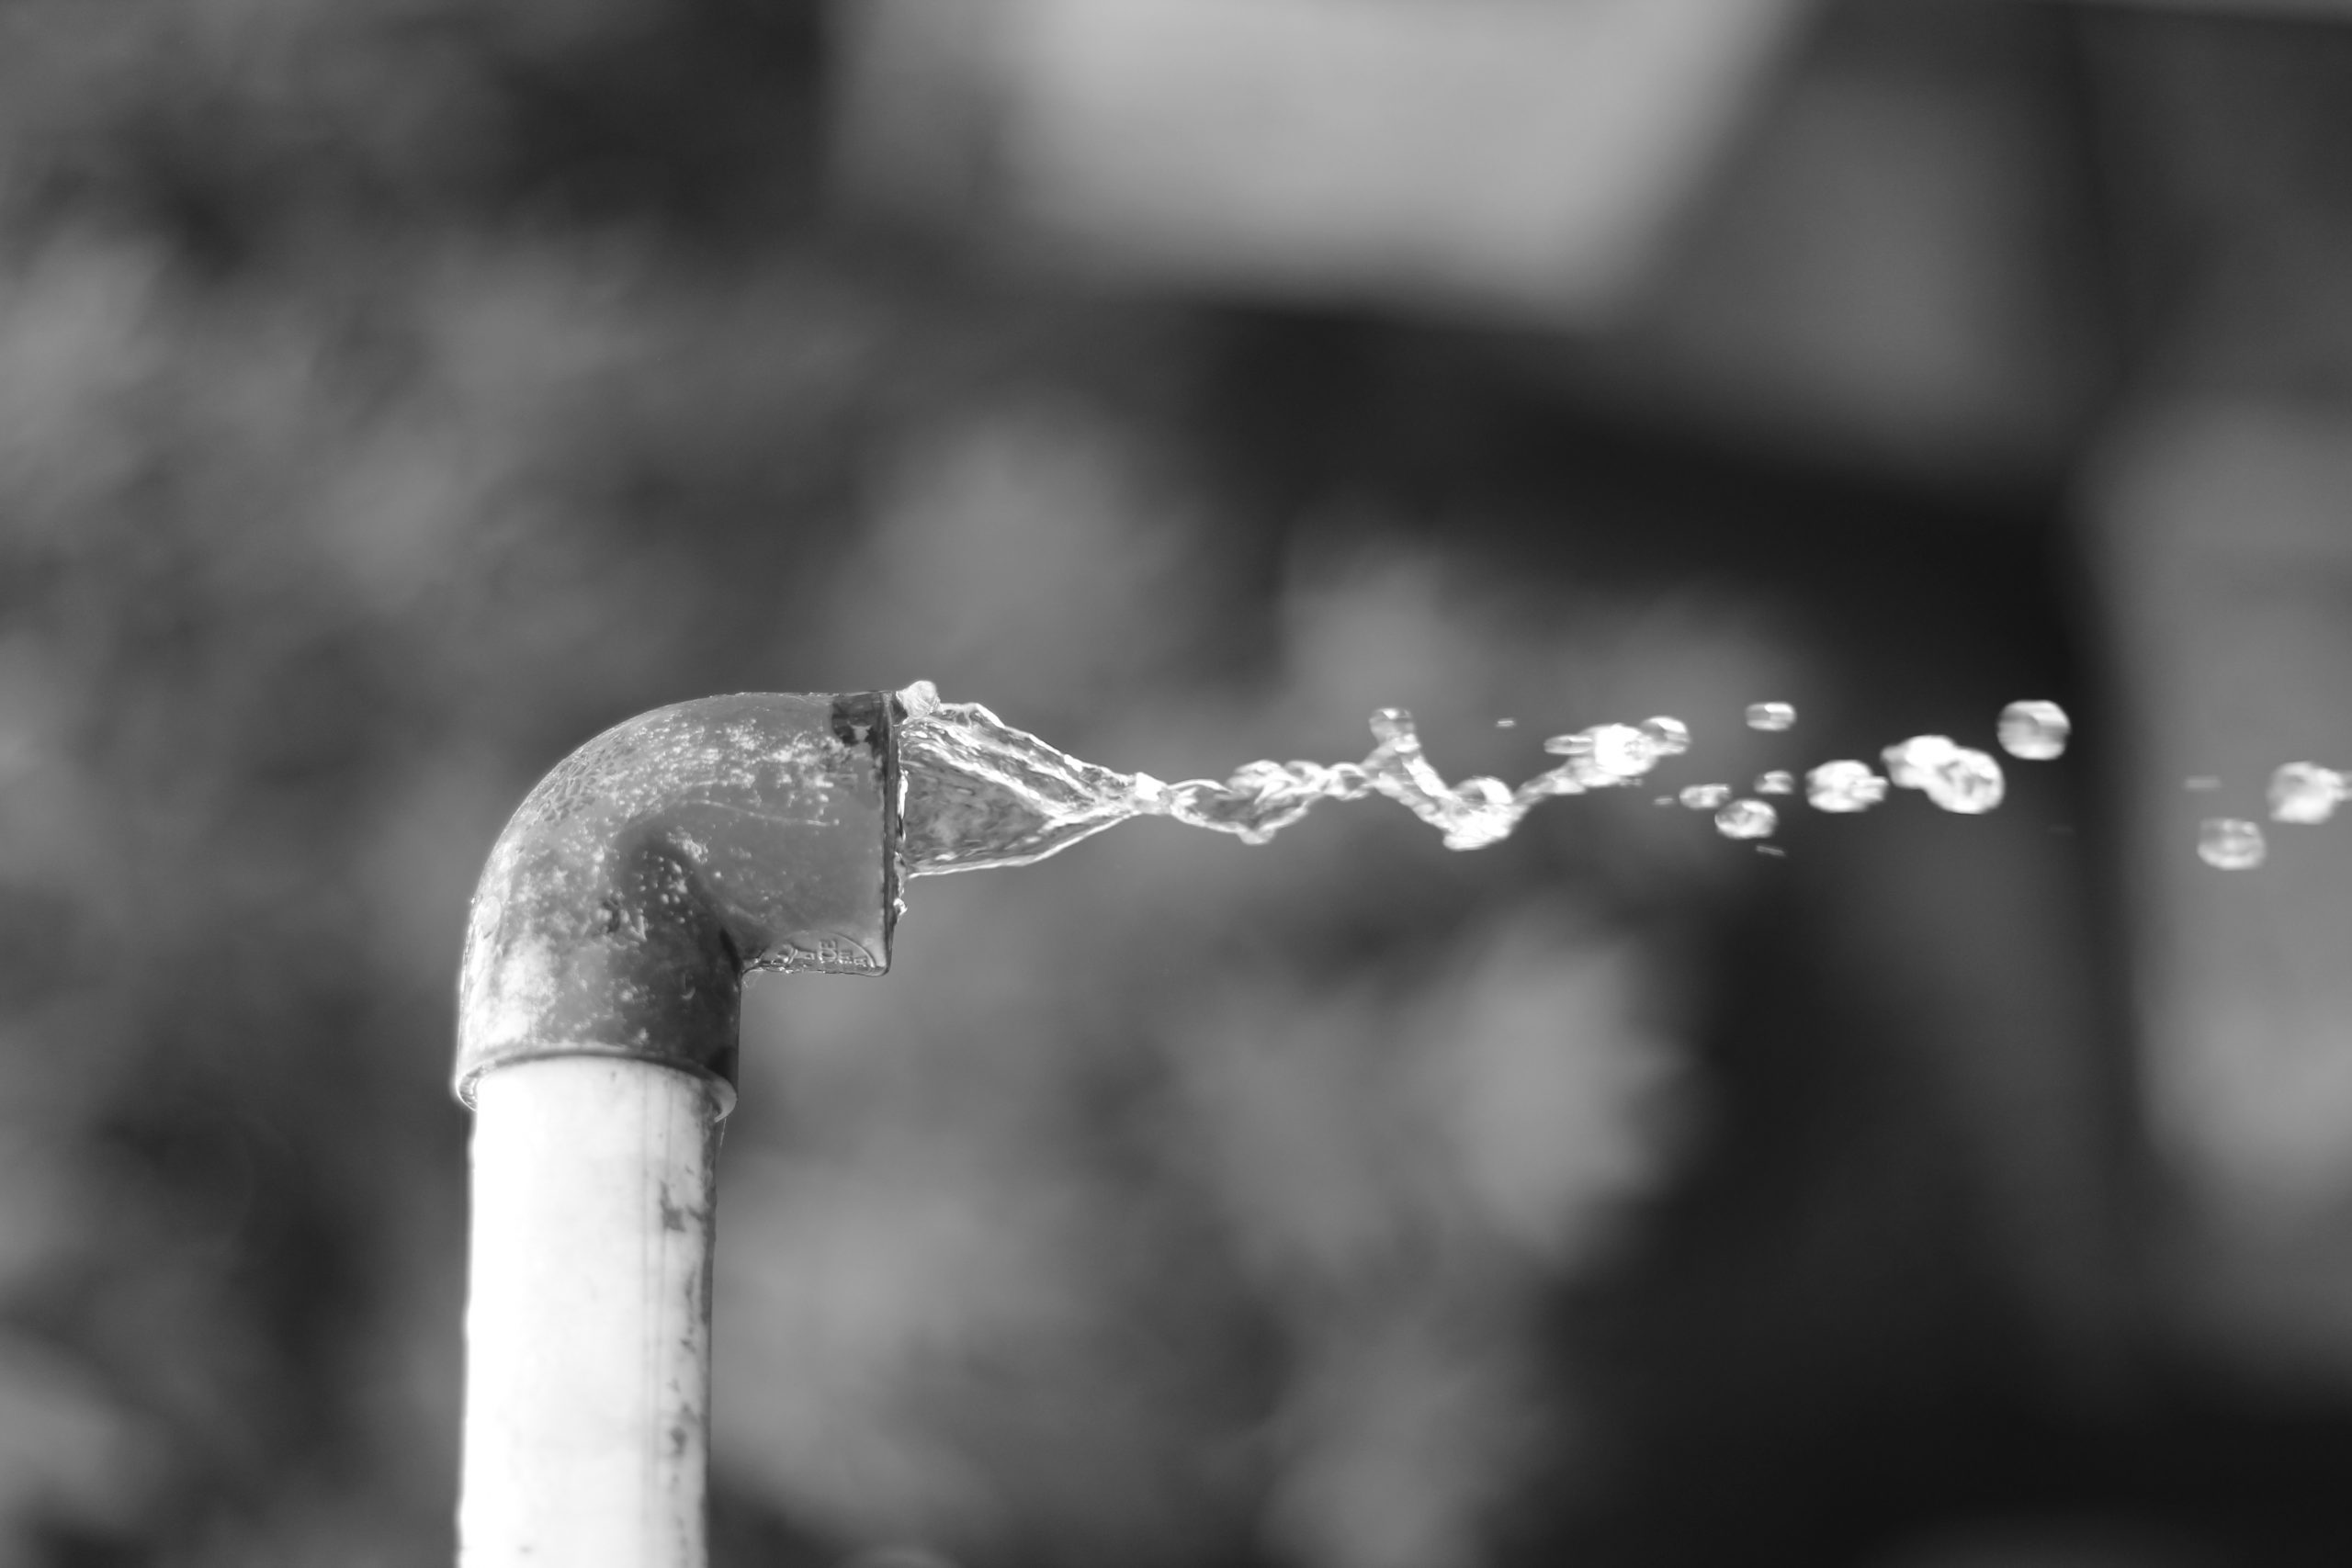 Water splash from a pipe